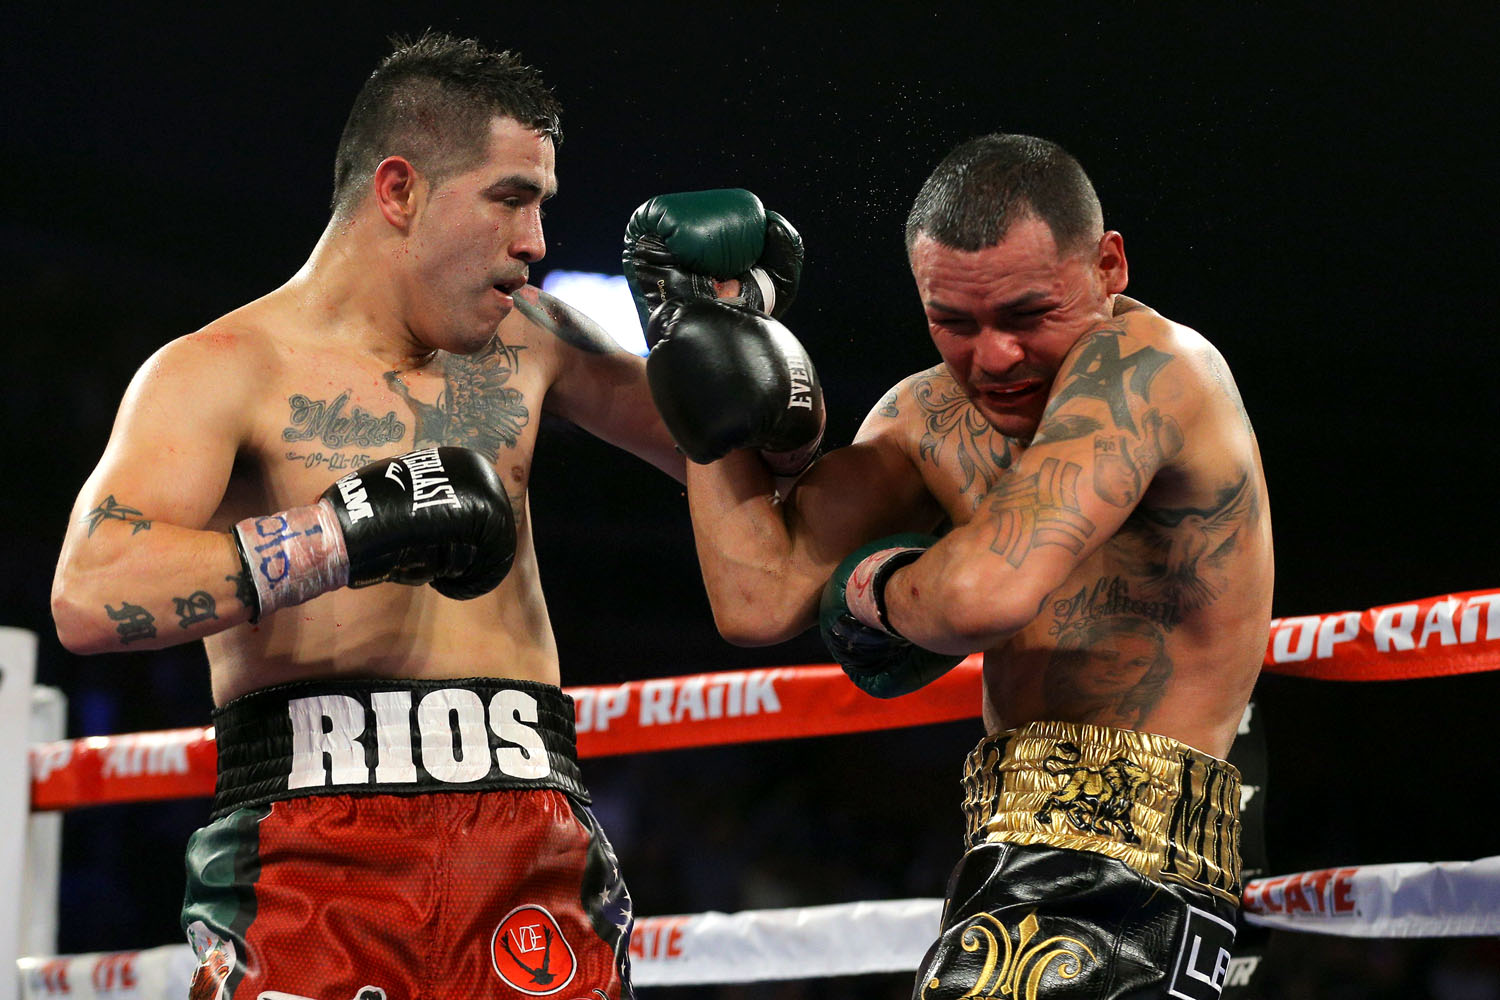 Can Rios finally get his signature win?